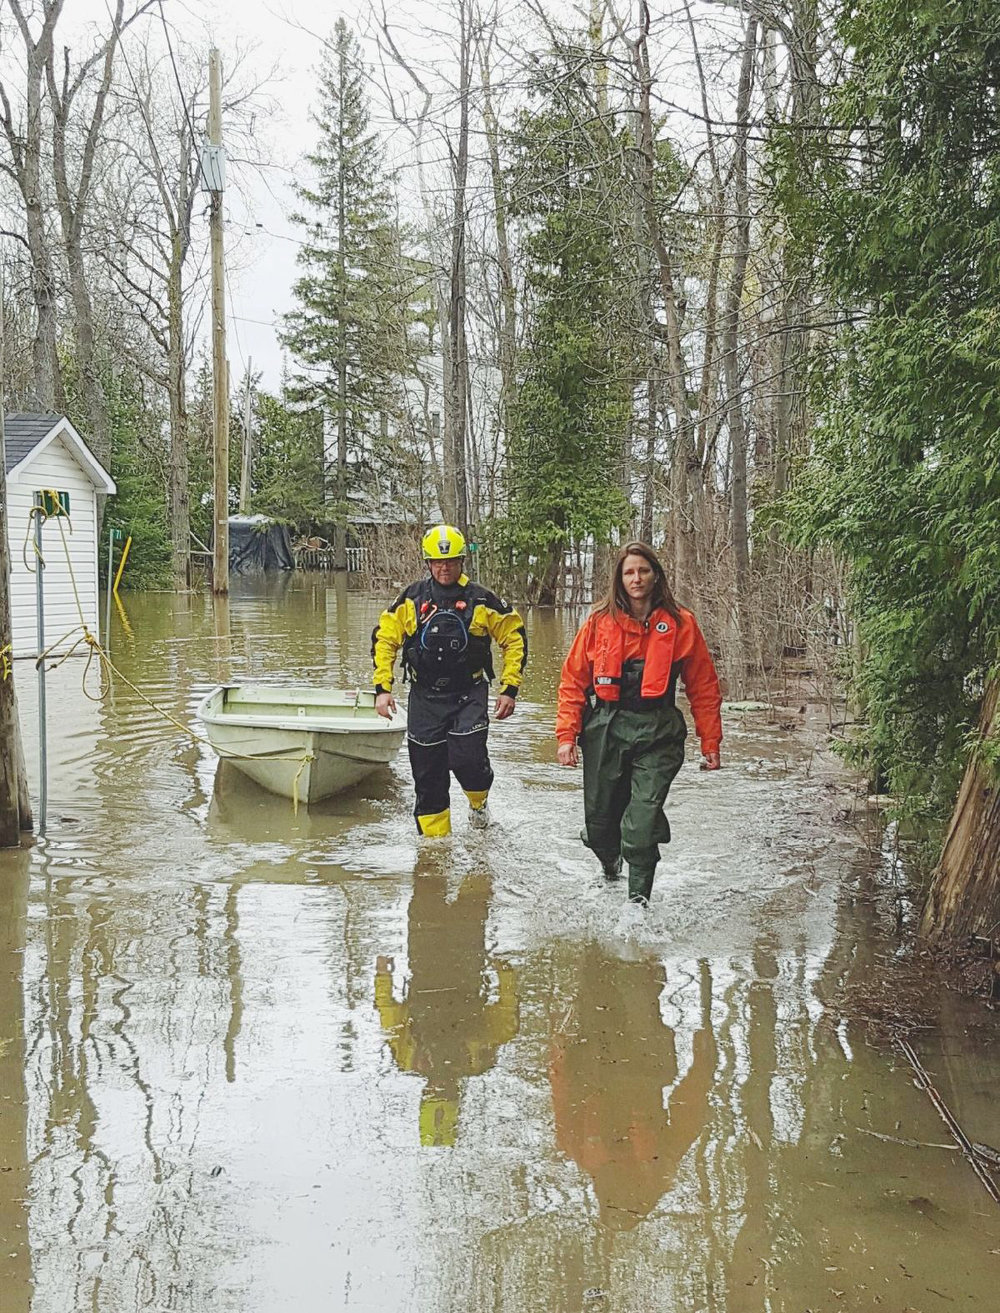 Author Eva Cohen (right) walks through a flooded neighbourhood in County Renfrew, west of Ottawa, in May 2017. A volunteer expert in urban search and rescue with the German Federal Agency for Technical Relief (THW), Cohen believes Canada should have a volunteer-based emergency preparedness organization to proactively respond when a natural disaster looms.